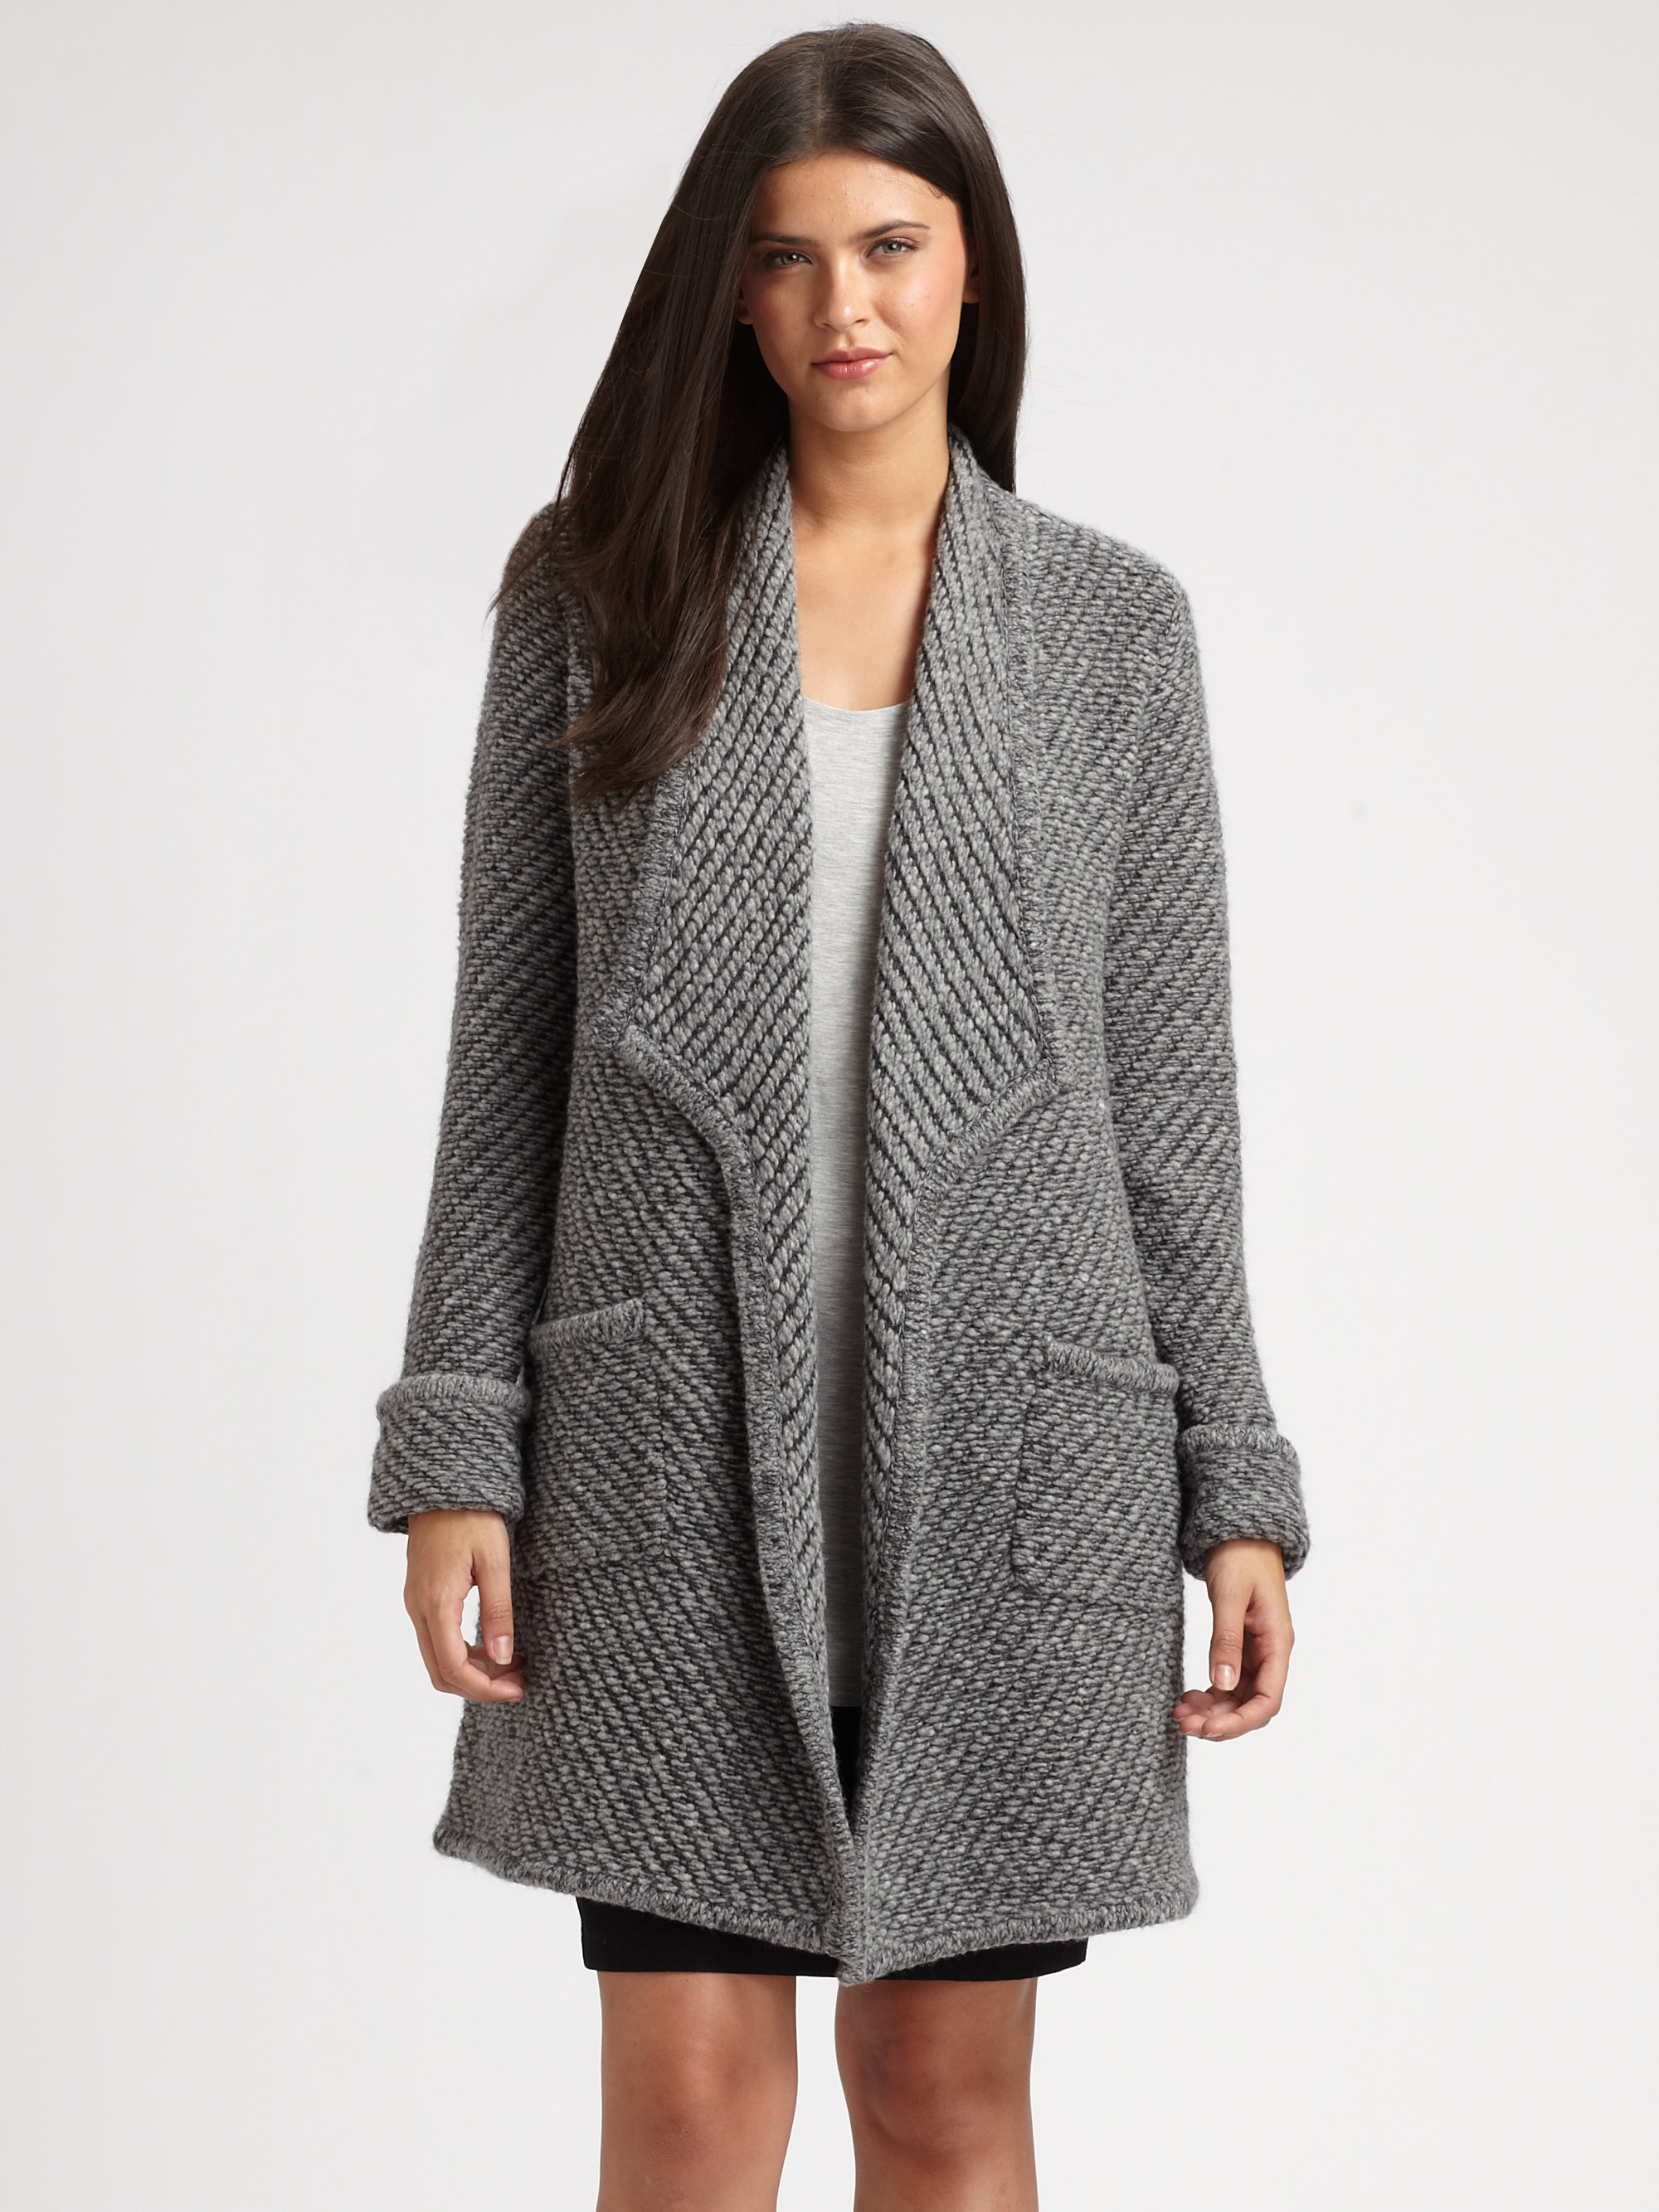 Eileen fisher Textured Sweater Coat in Gray | Lyst